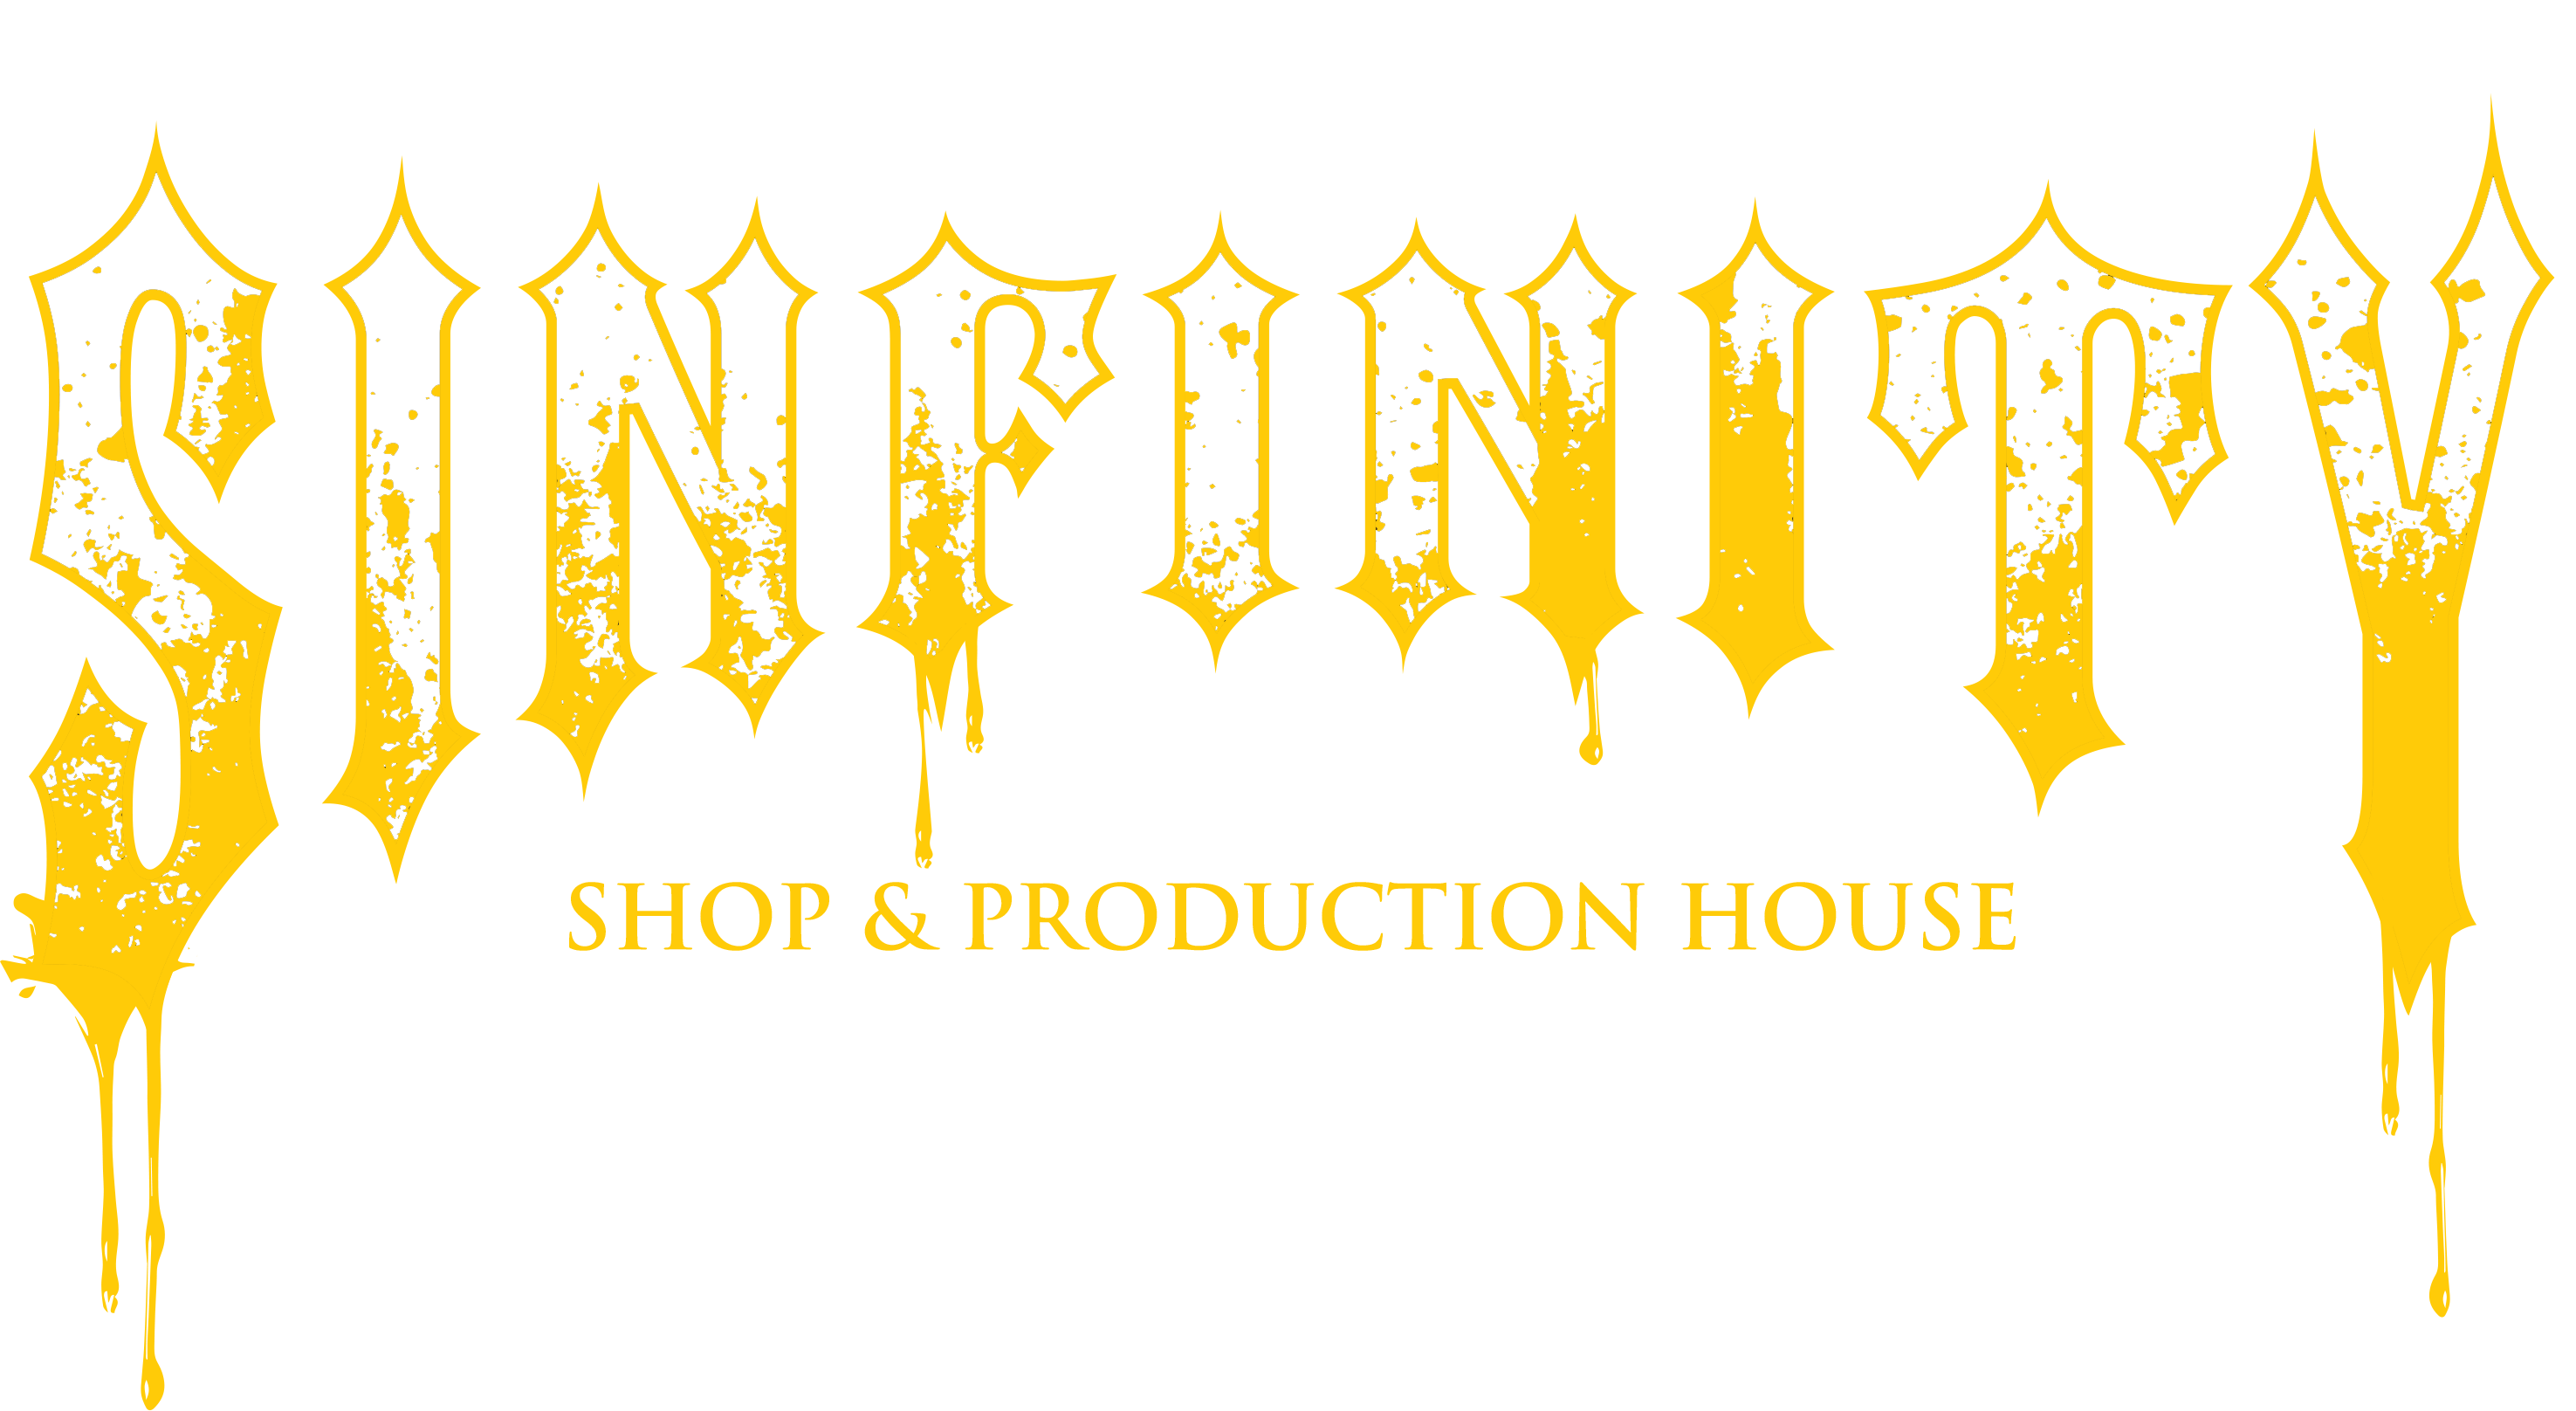 Sinfinity Clothing